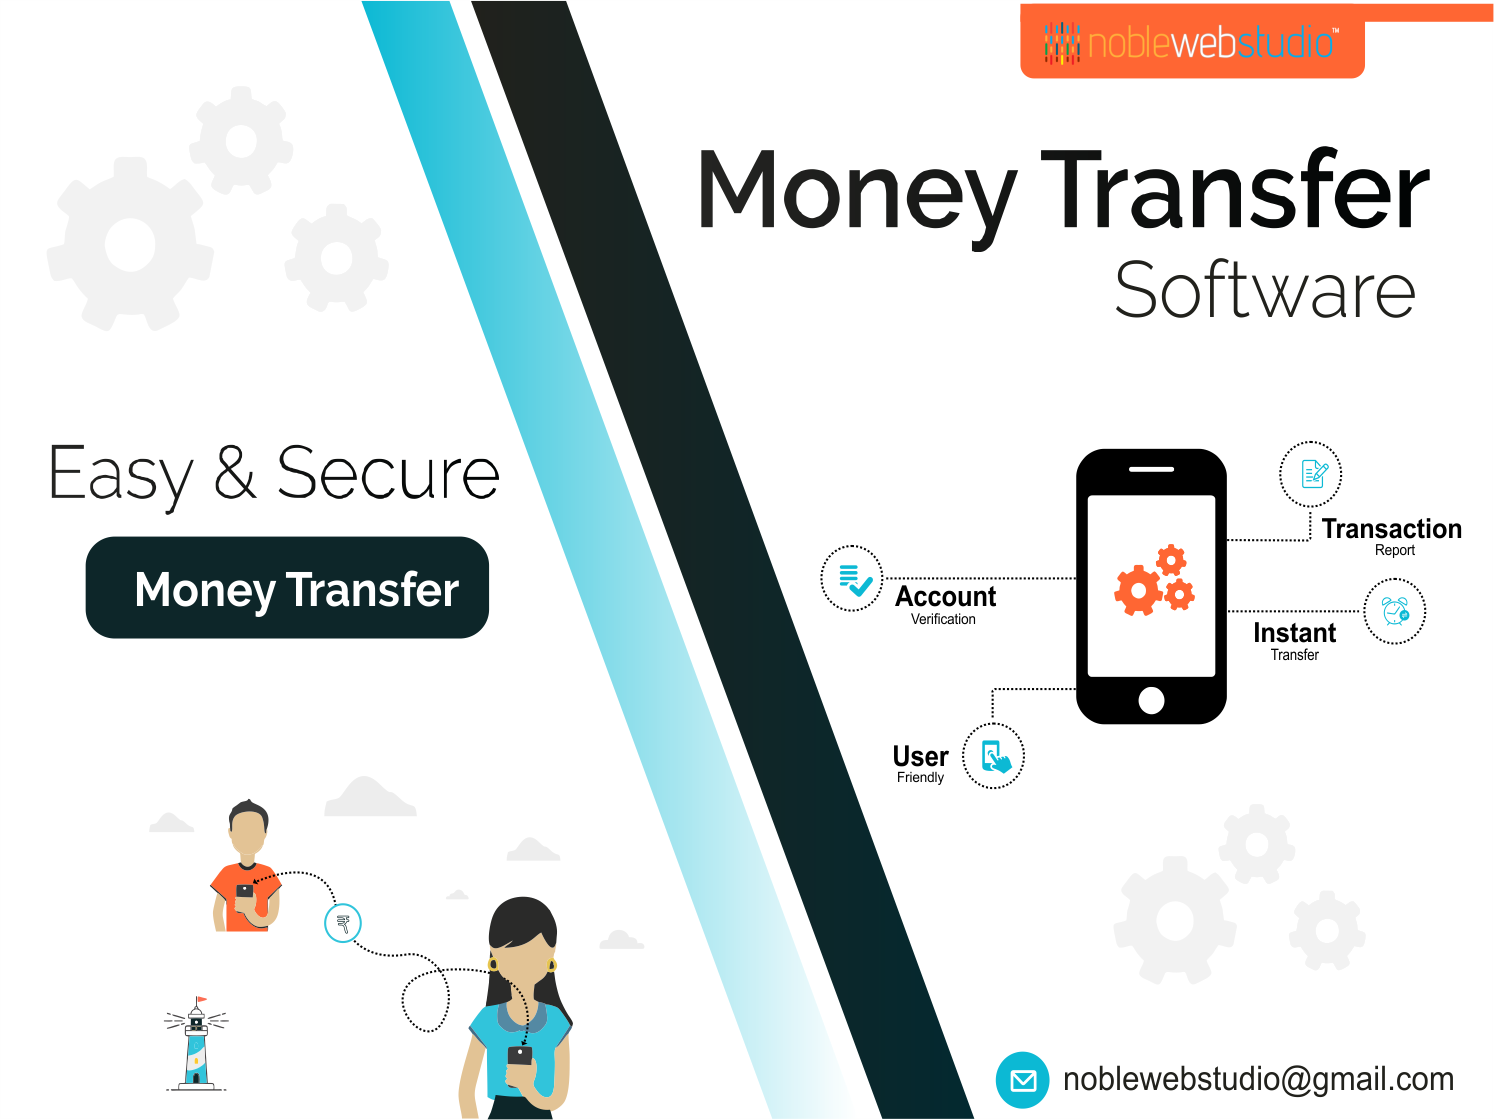 Money Transfer For Banks And Remittance Agents A Complete Bespoke Secure Online System From Lewebstudio Com